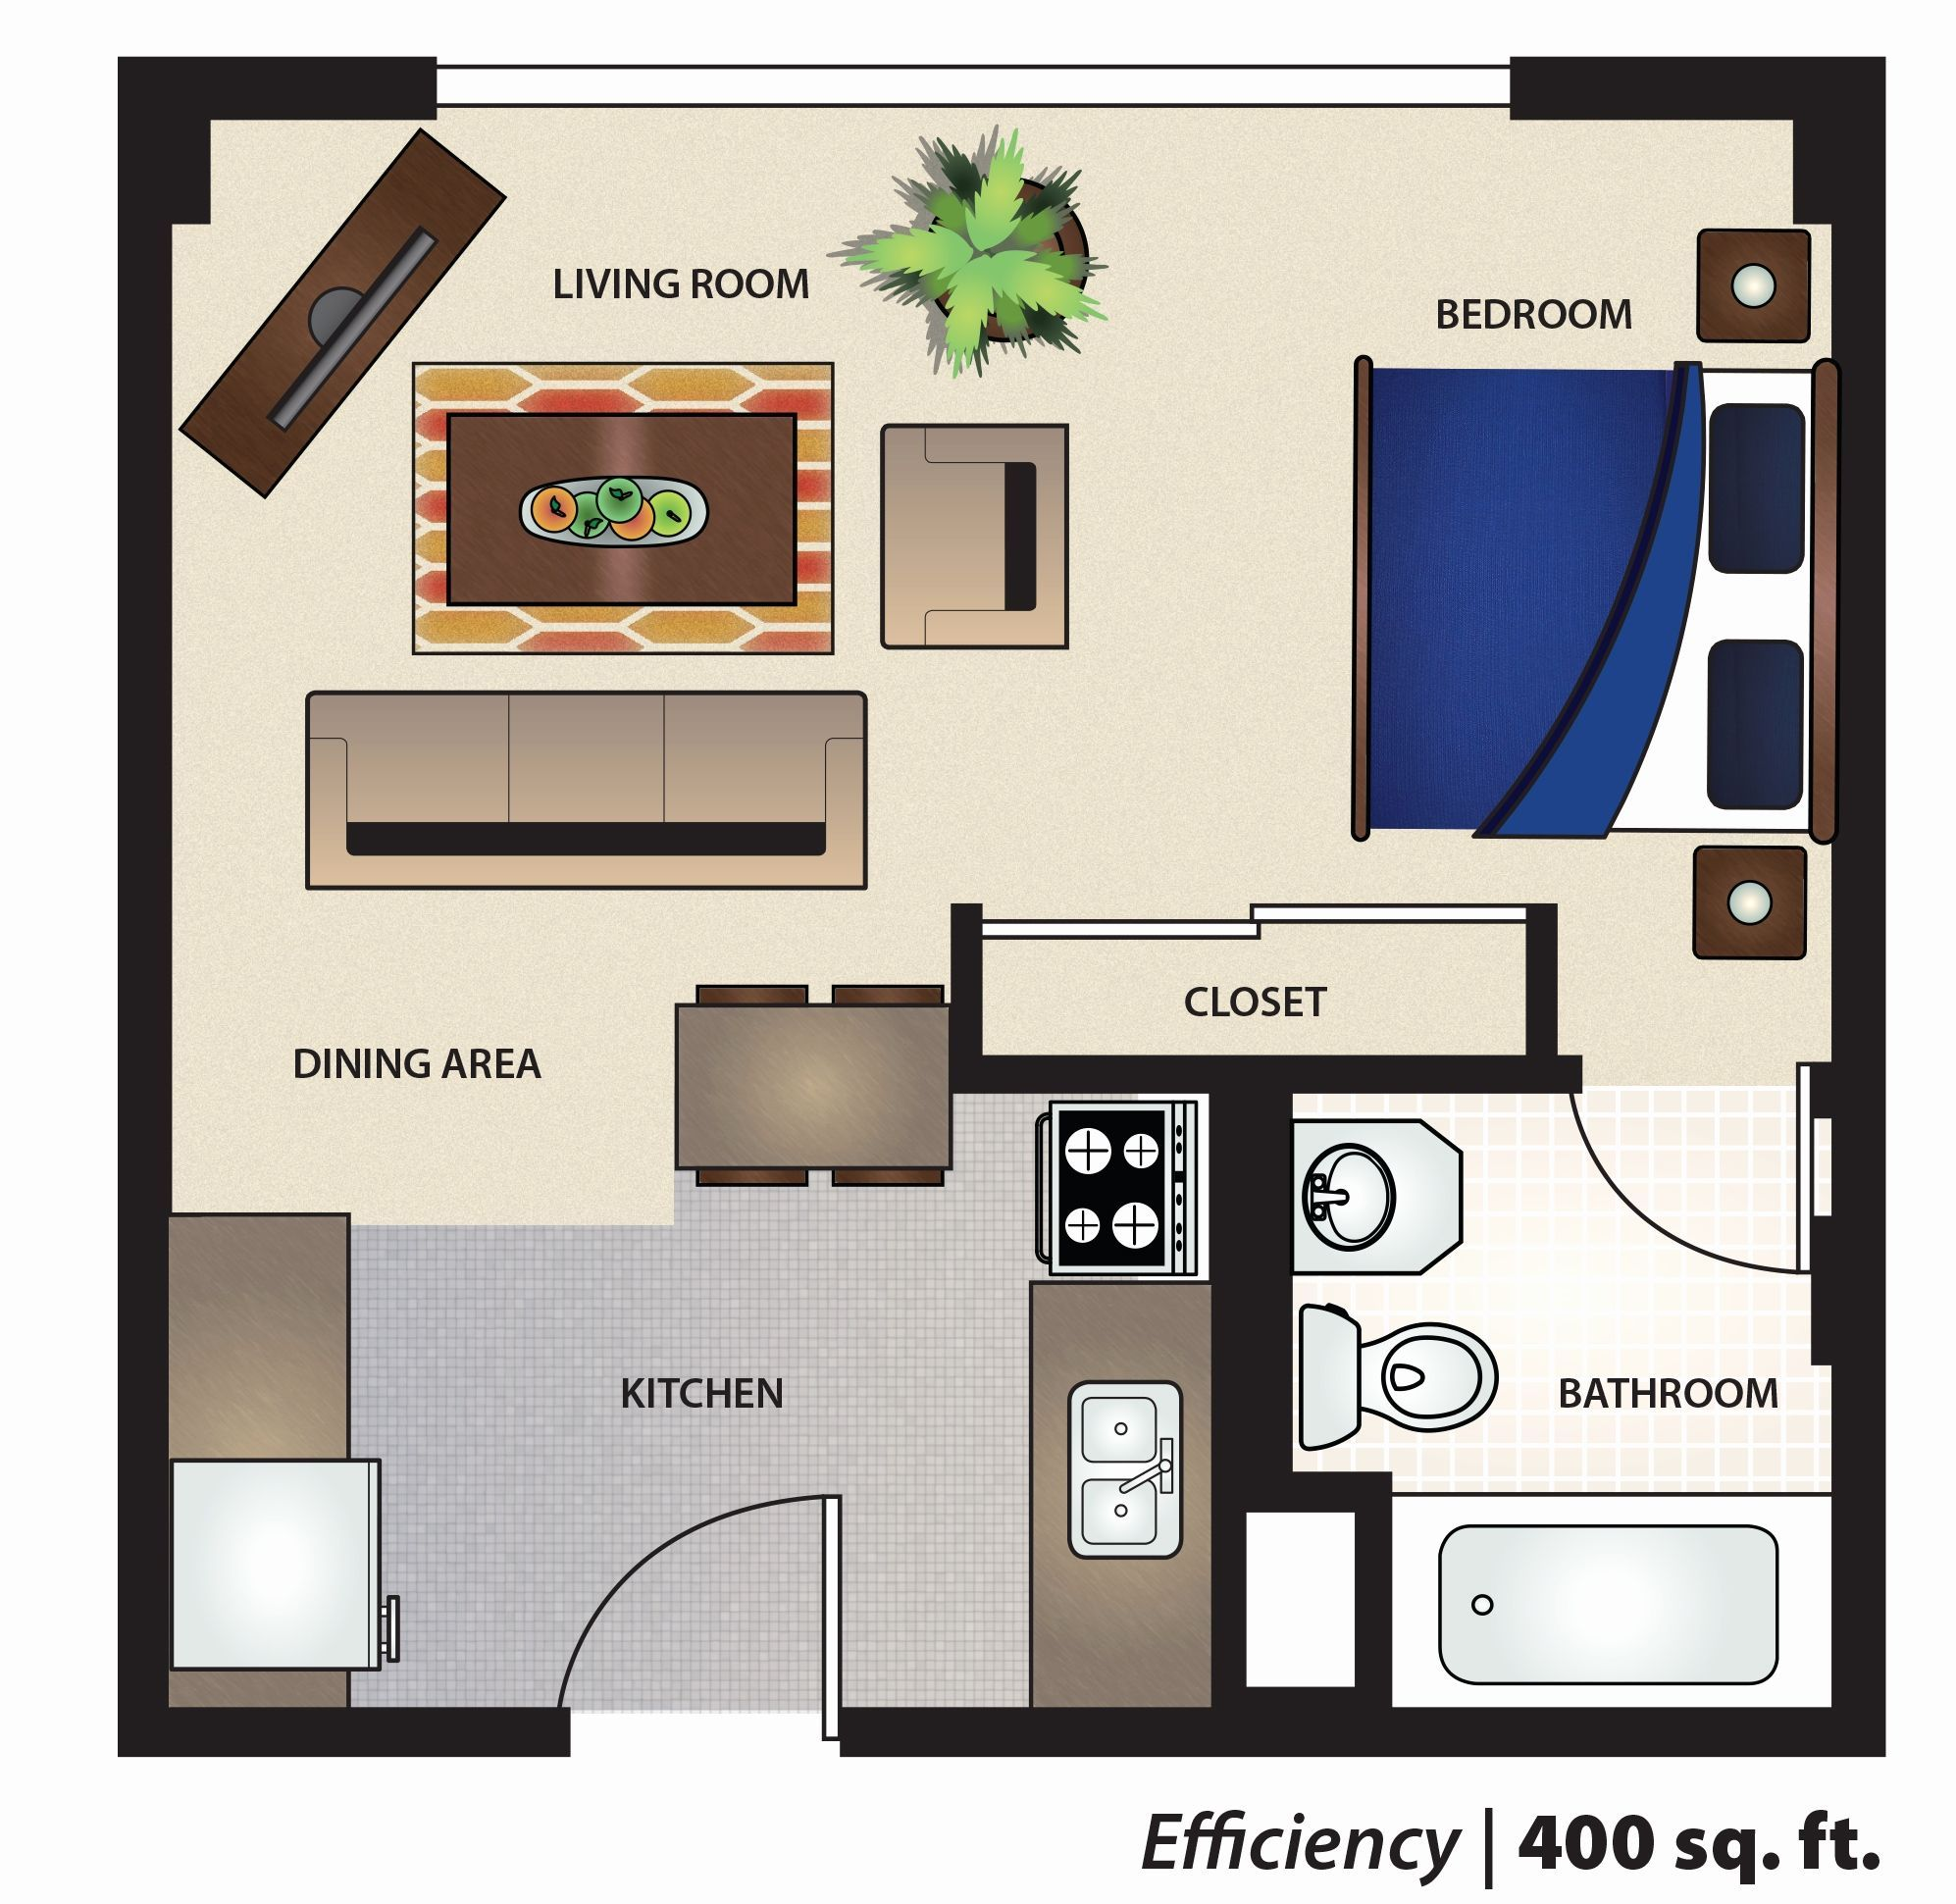 400 Sq Ft House Plans Beautiful 400 Square Feet Indian House Plans Youtube Sq Ft Tami Studio Apartment Floor Plans Small Apartment Plans Above Garage Apartment